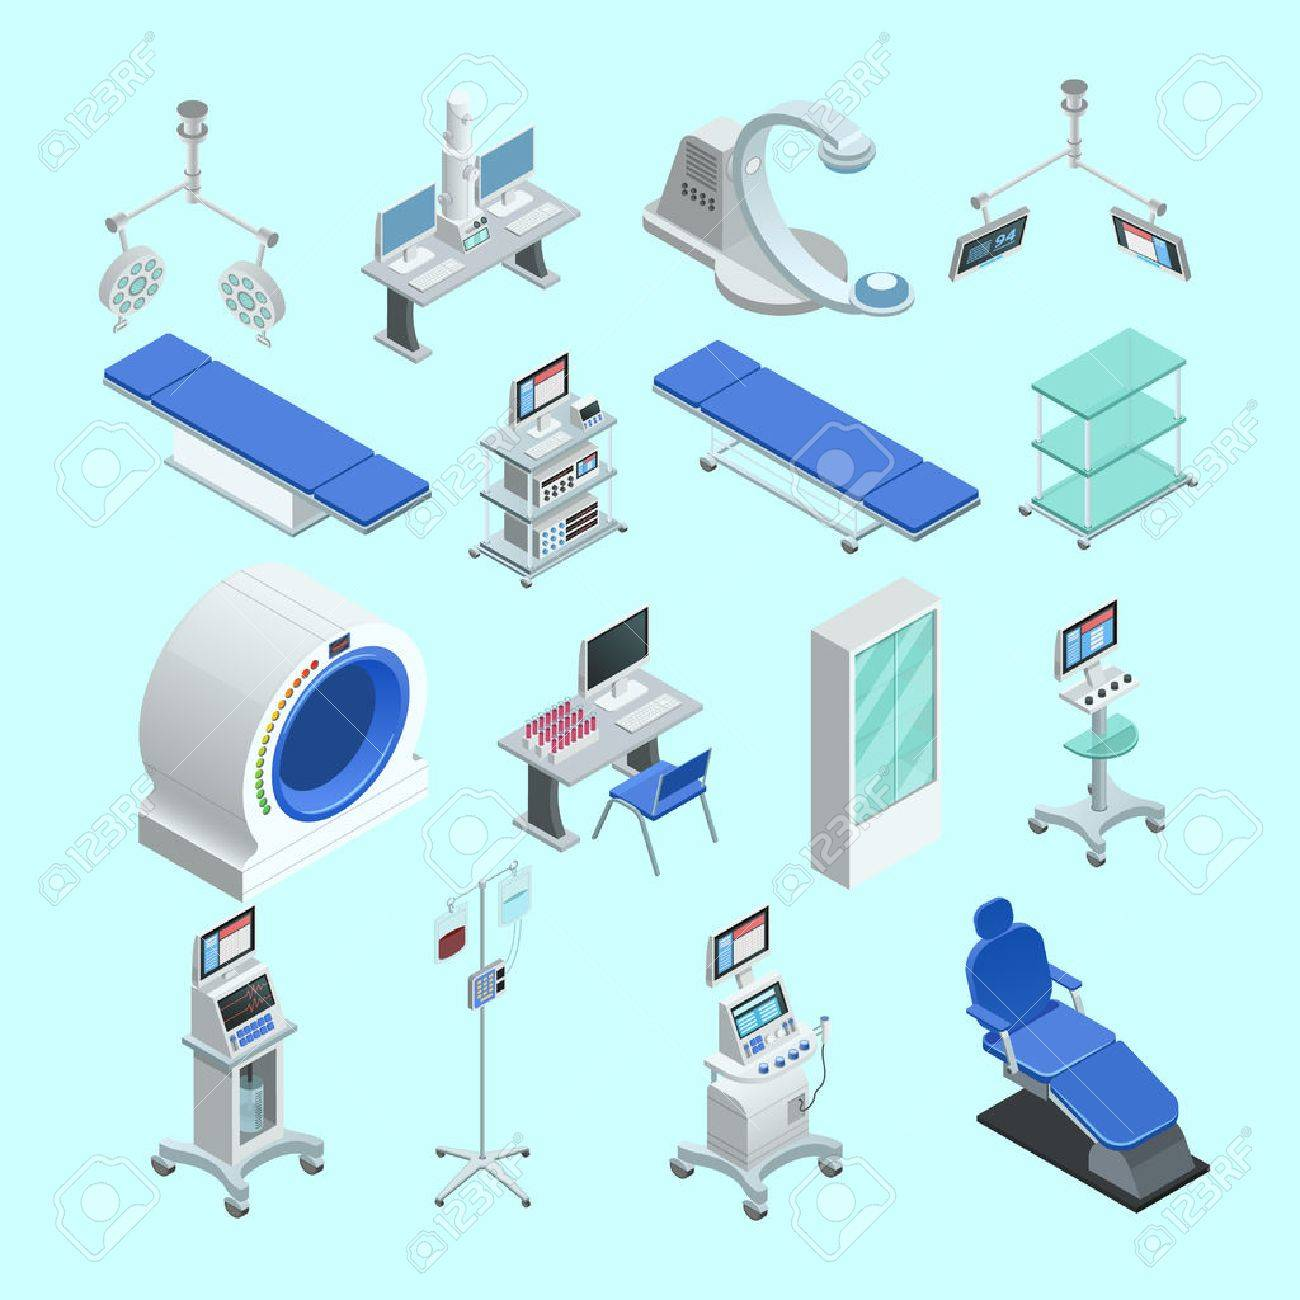 Modern medical surgery and examination rooms equipment with scanner monitor and operation table abstract isolated vector illustration - 58514900